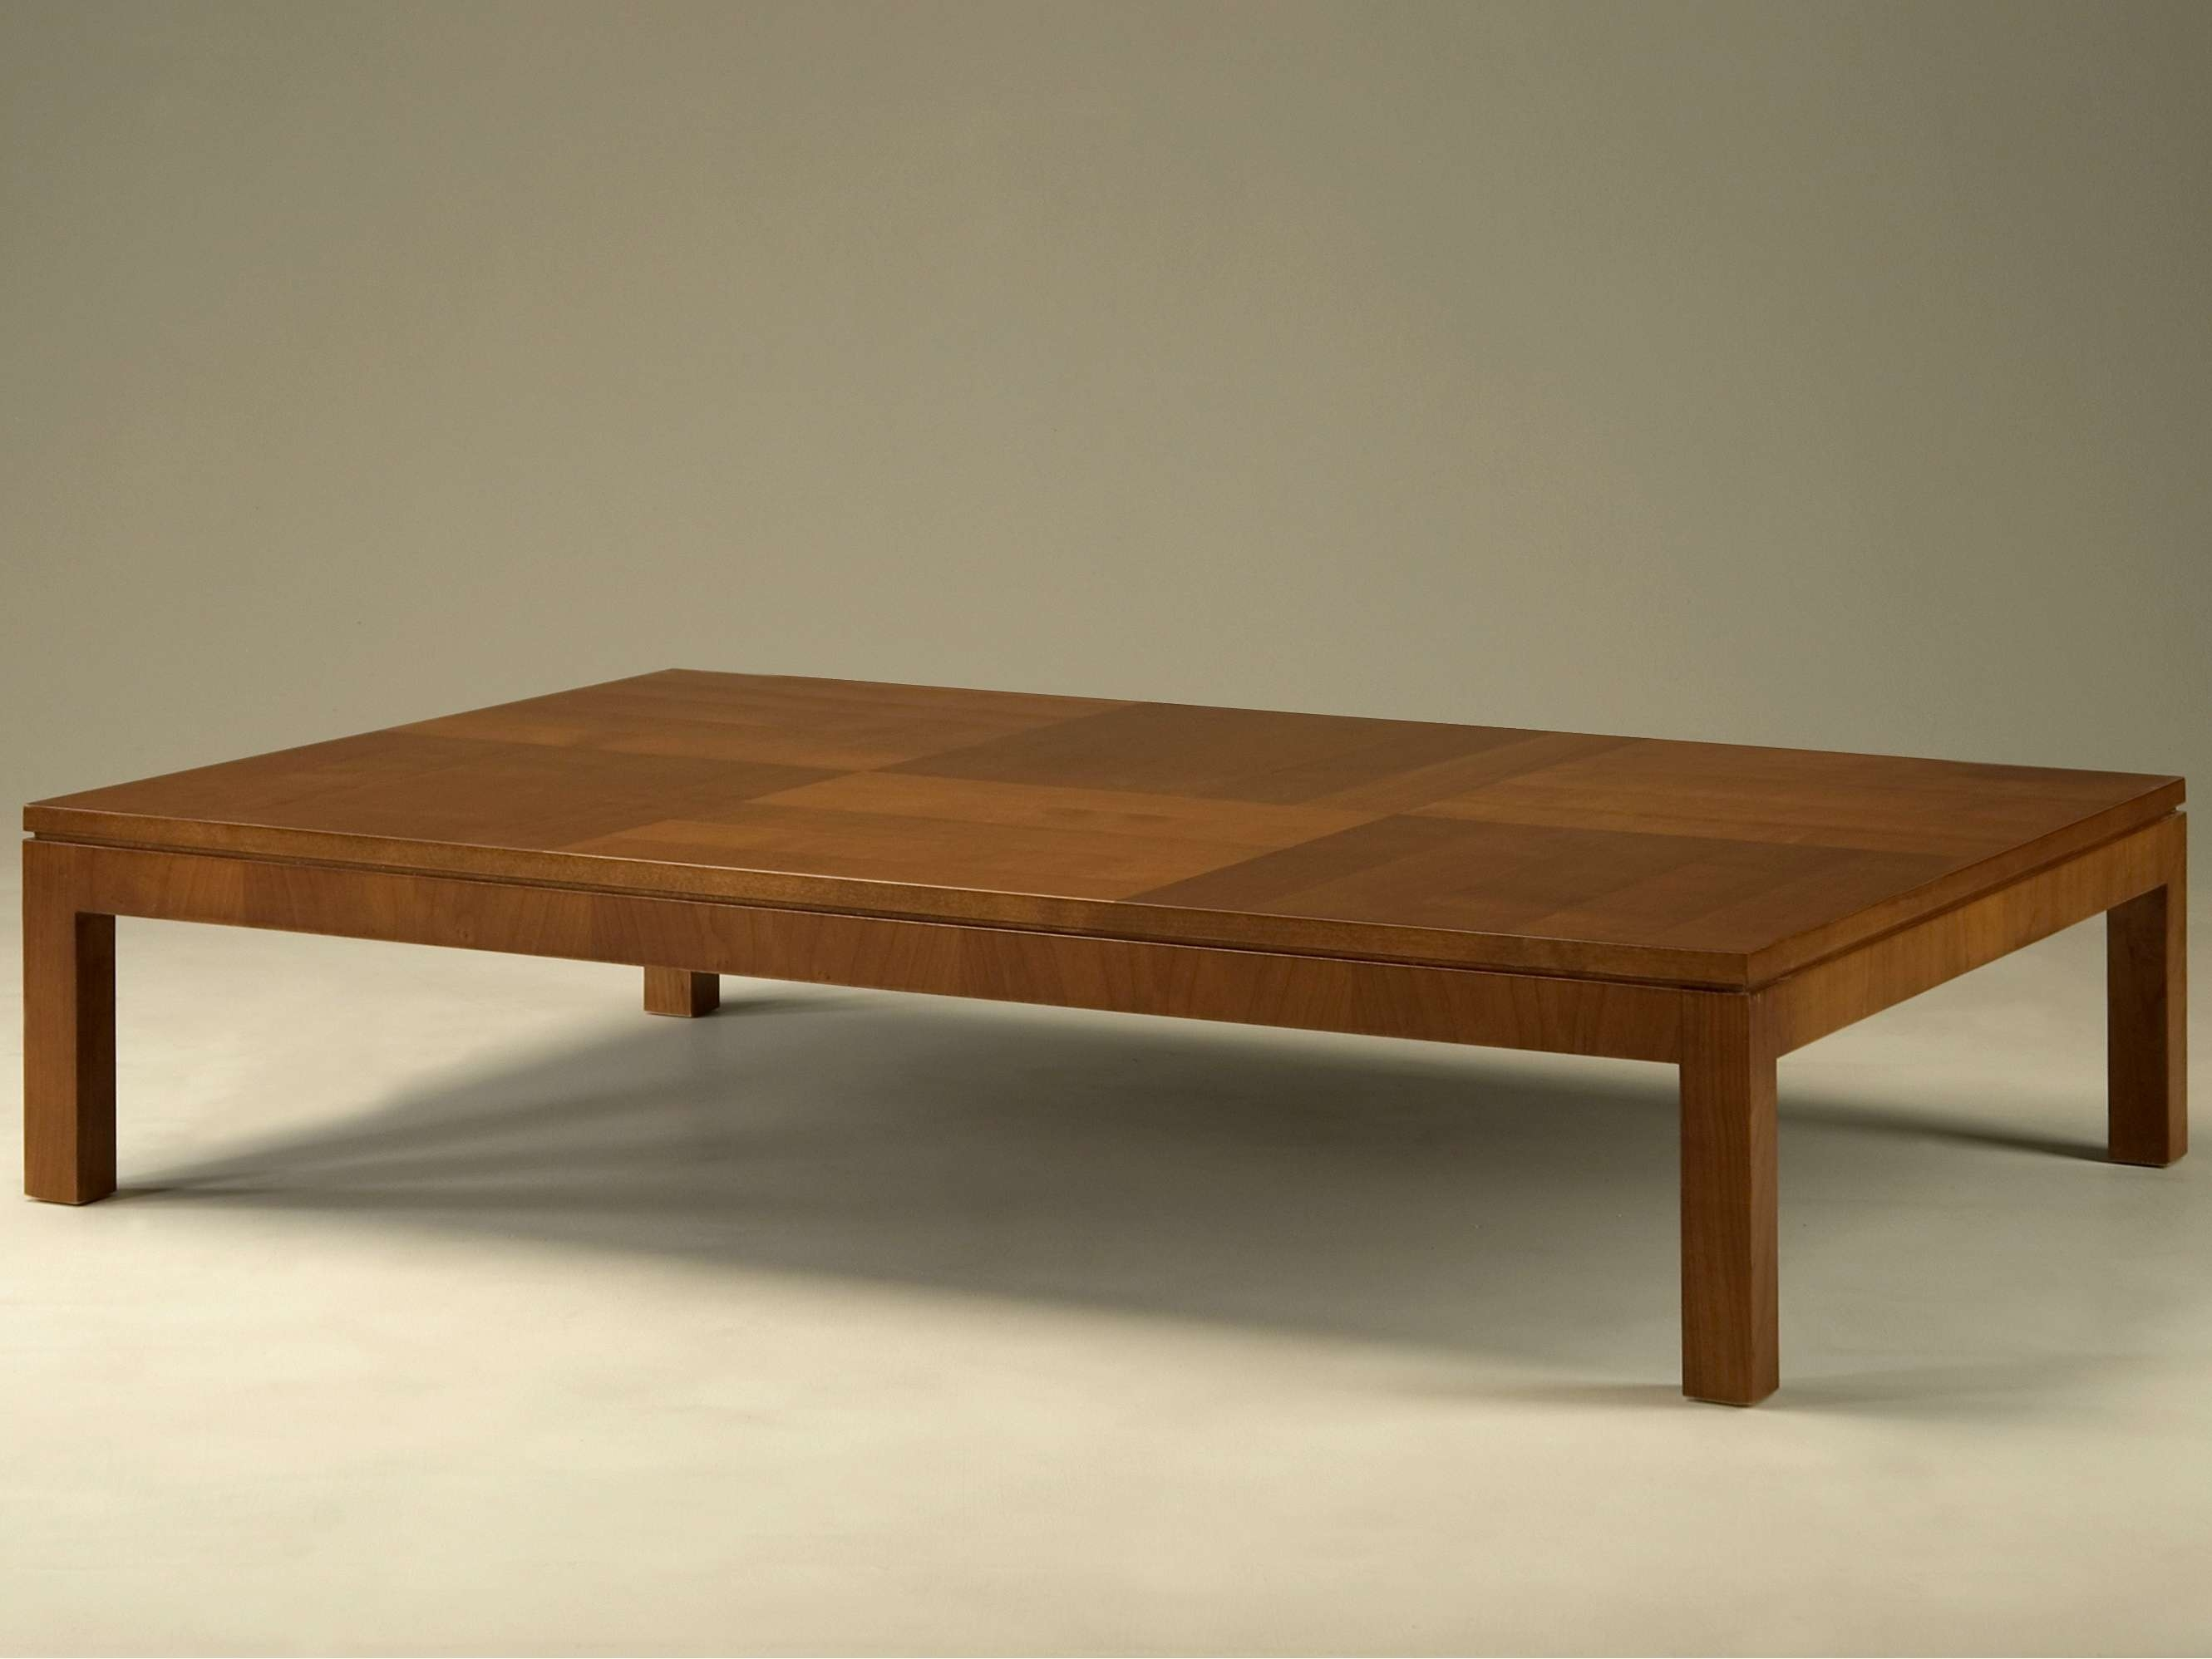 Coffee Table : Wonderful Square Coffee Table Large Square Coffee Regarding Most Recent Large Round Low Coffee Tables (View 14 of 20)